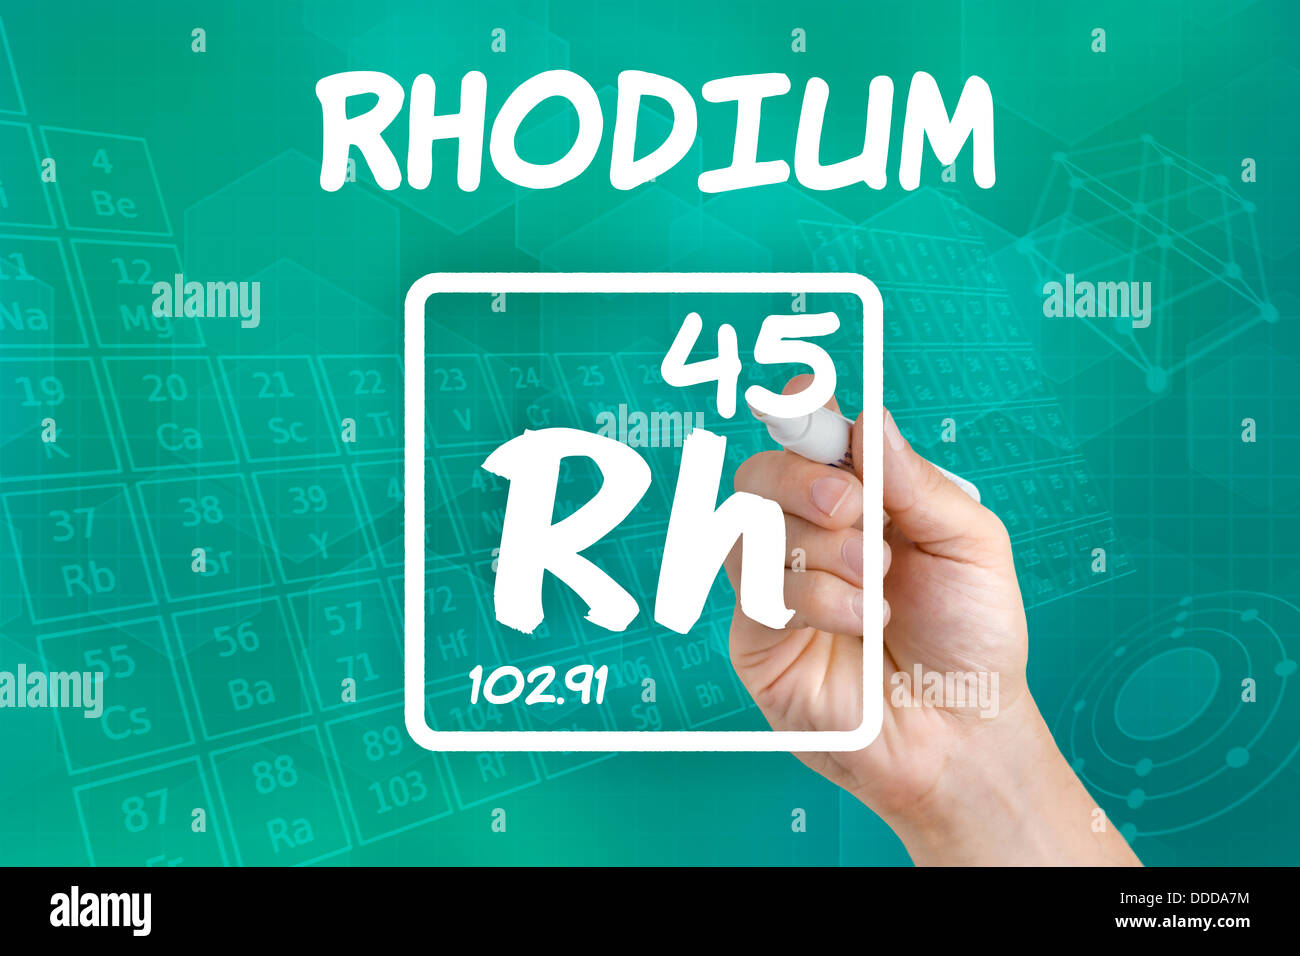 Symbol For The Chemical Element Rhodium Stock Photo 59915064 Alamy